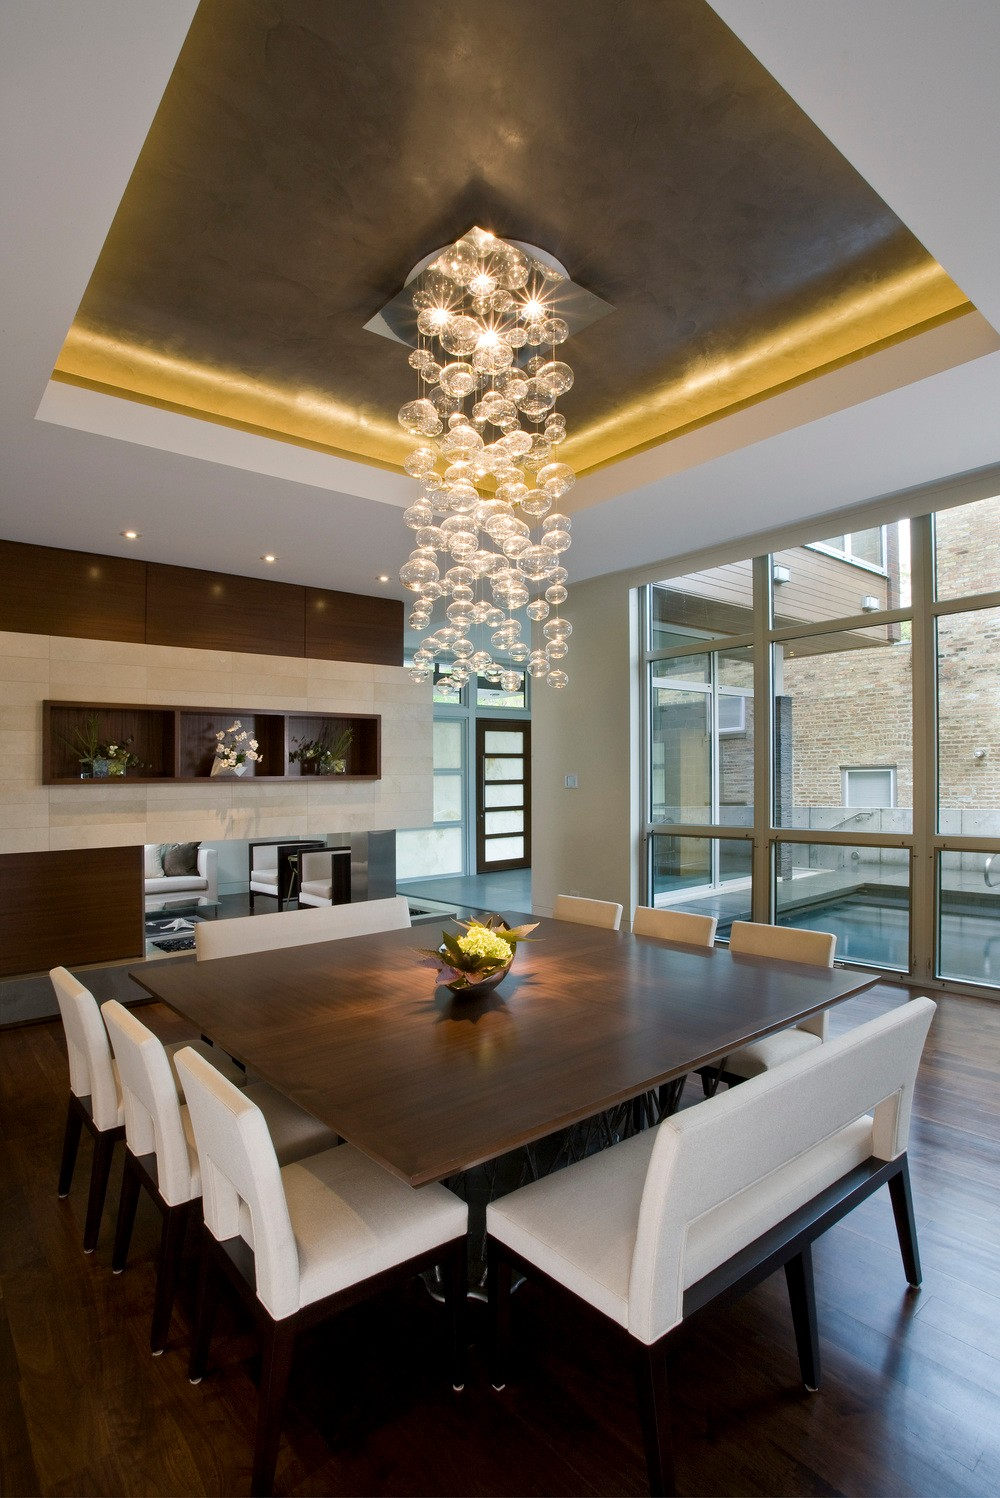 10 Splendid Square Dining Table Ideas for a Modern Dining Room